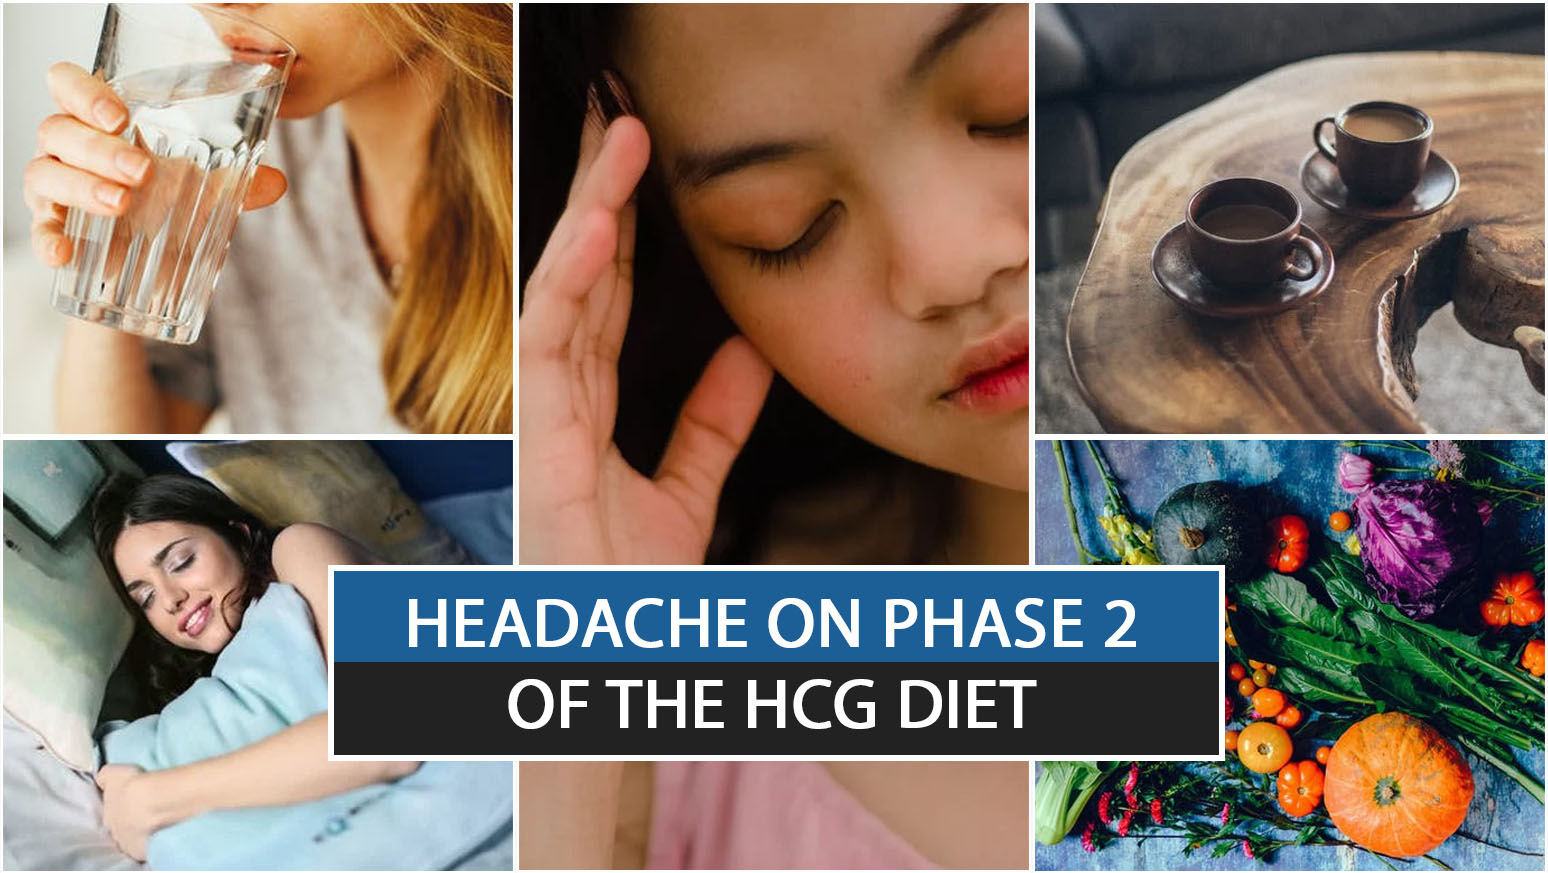 HEADACHE ON PHASE 2 OF THE HCG DIET